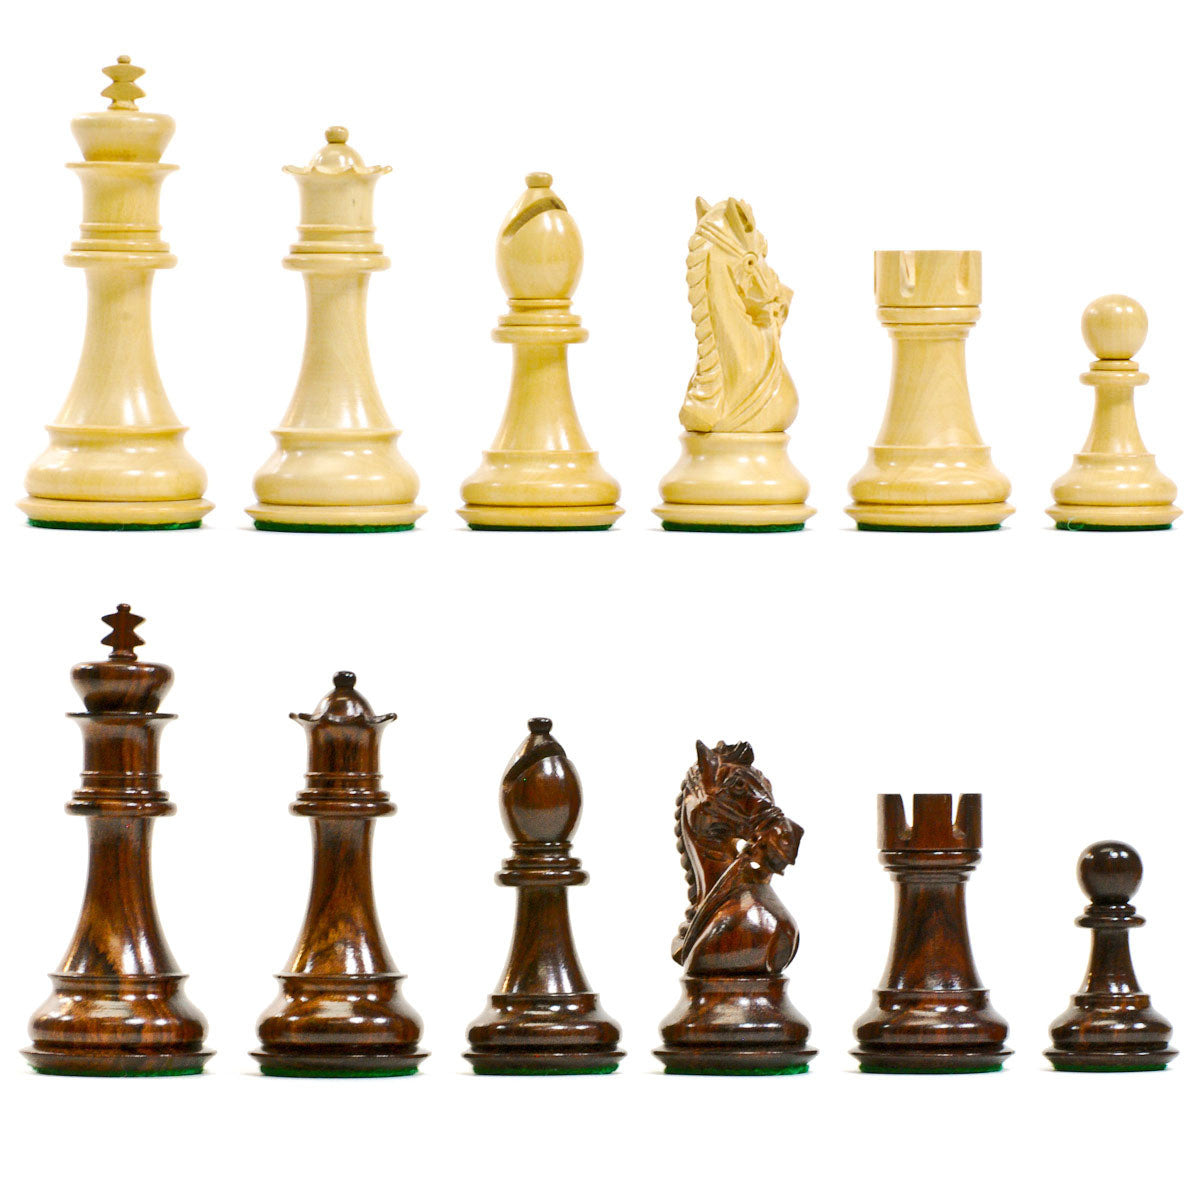 King's Bridle Wooden Chess Pieces